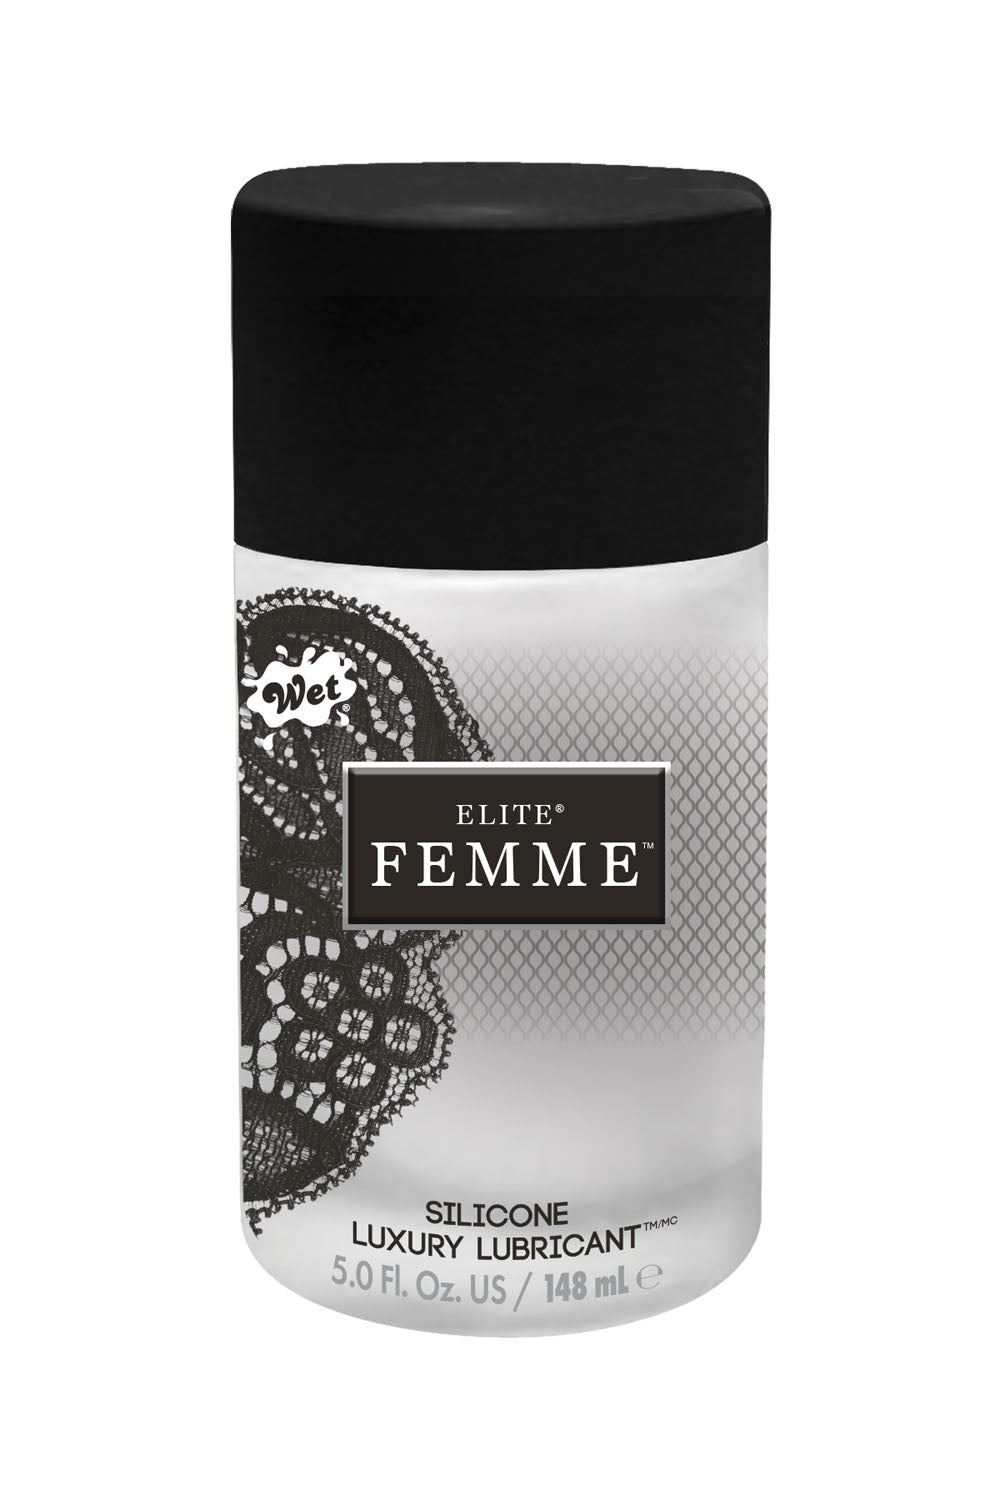 Wet Elite Femme Pure Silicone - 5 Fl. Oz./ 148 ml - My sheree and More